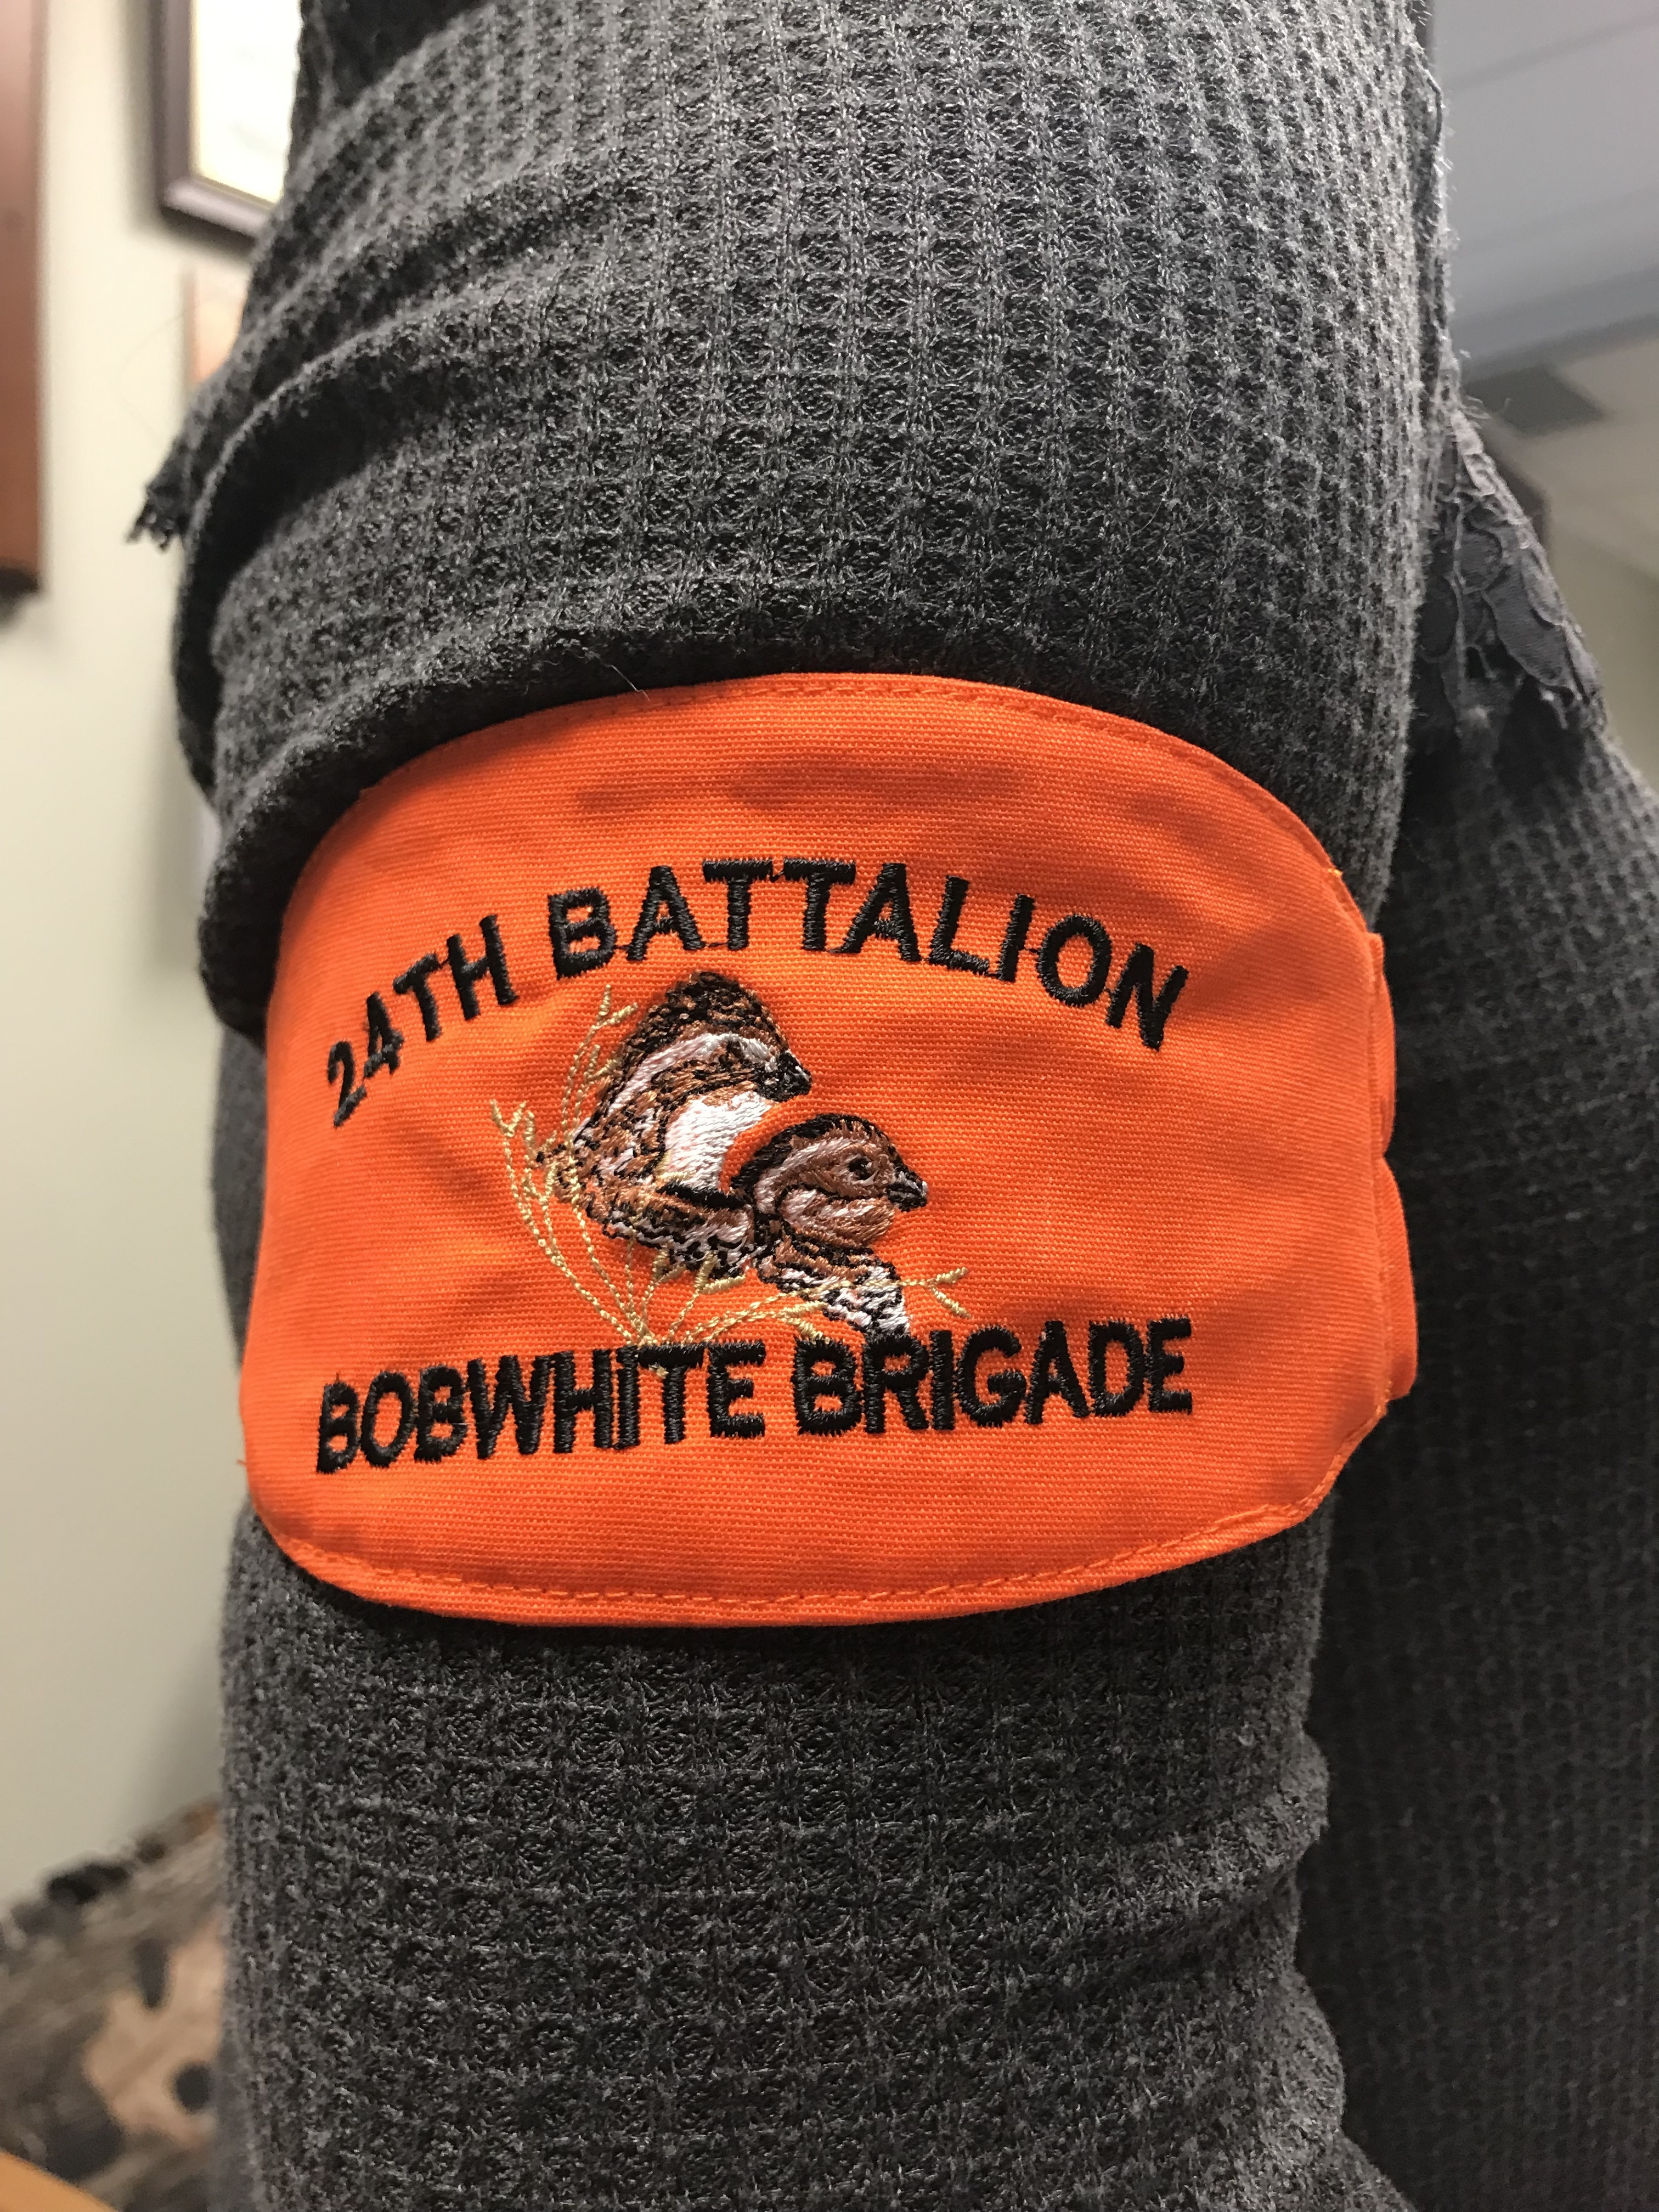 Rolling Plains Bobwhite Brigade 24th Battalion Arm Band